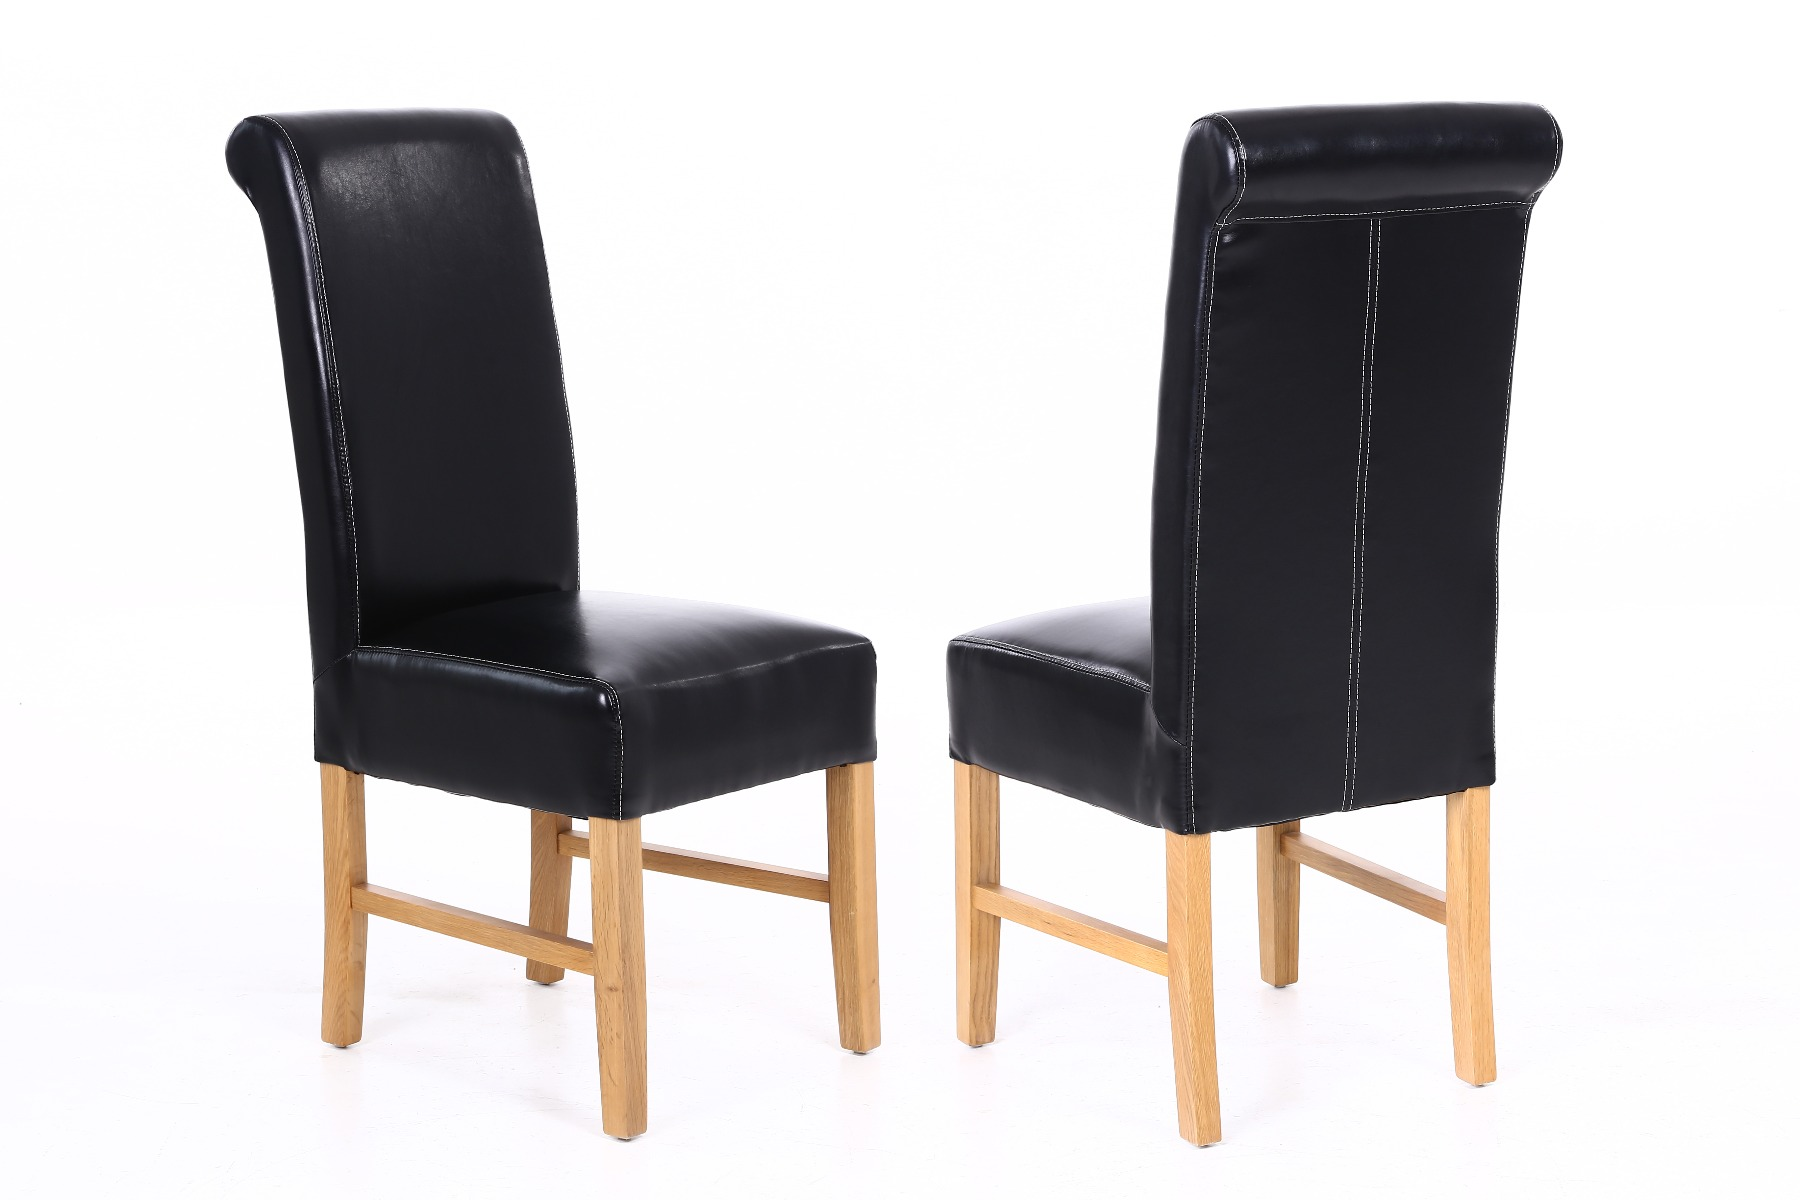 Black Leather Dining Chairs Emperor Black Leather Scroll Back Dining Chairs With Oak Legs